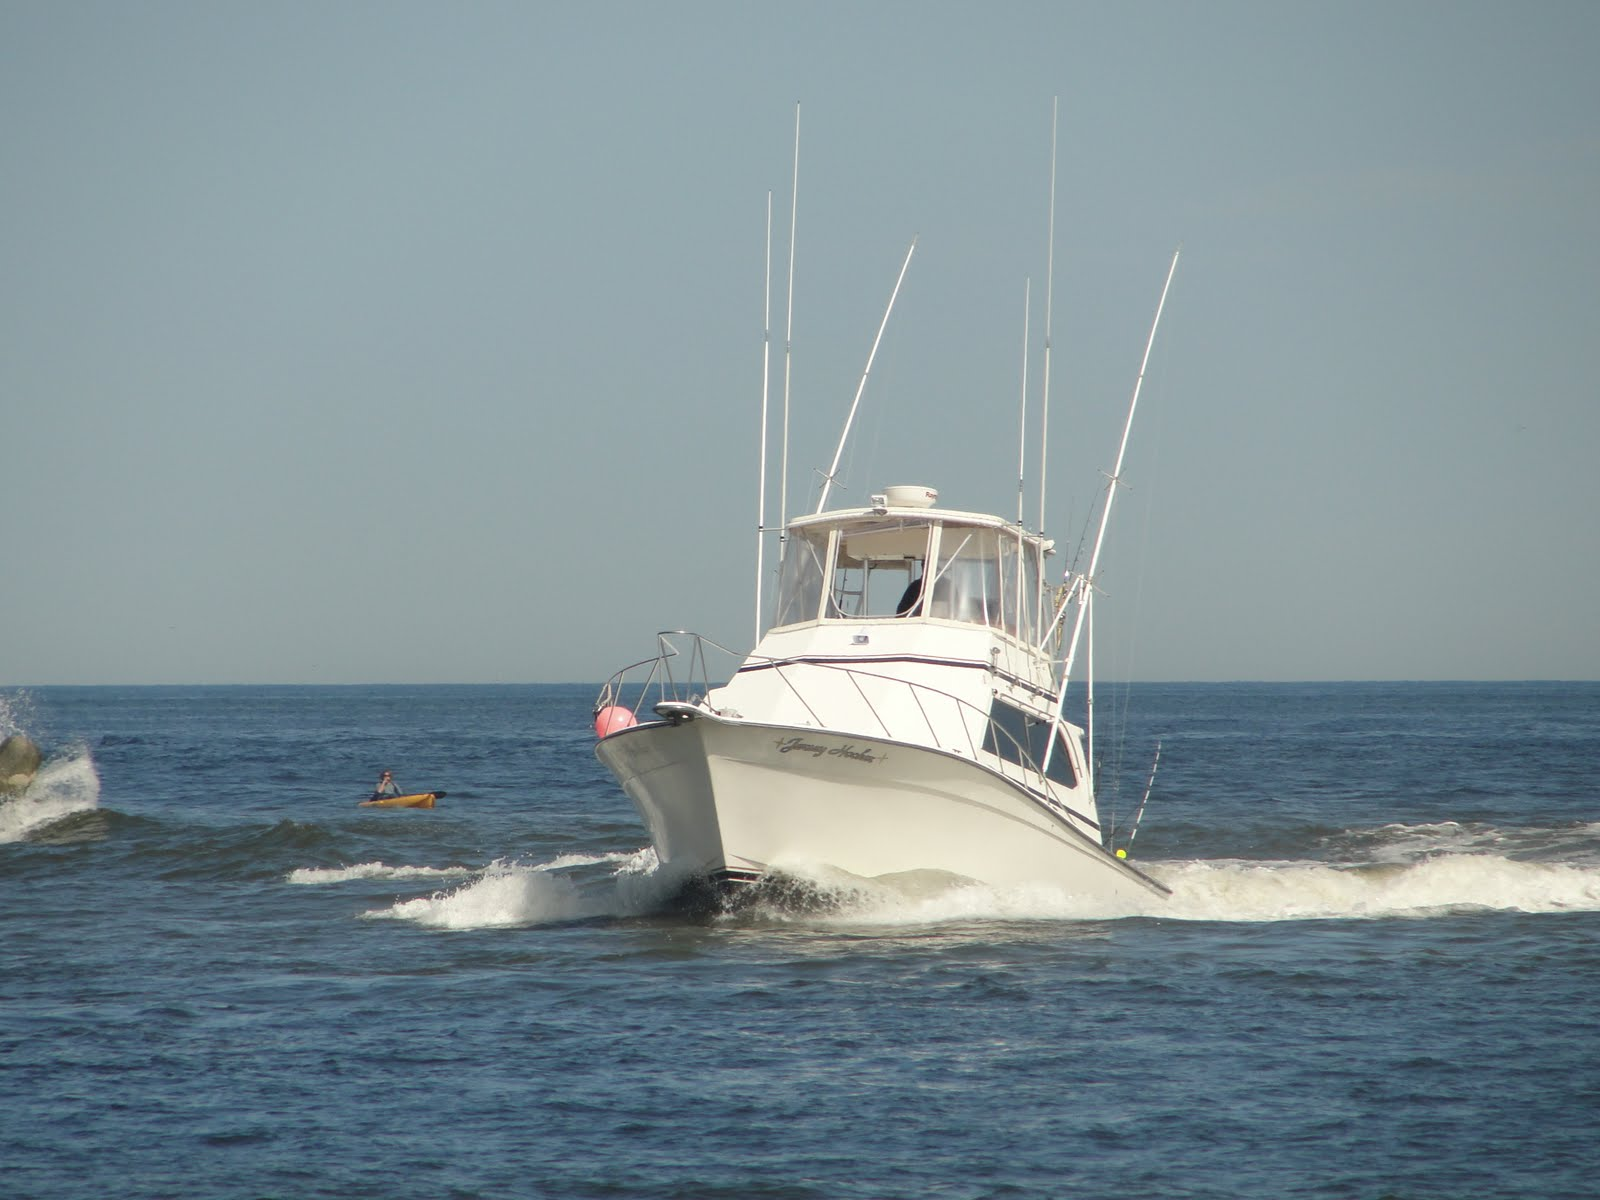 New jersey fishing charters point pleasant beach fishing for Fishing charters nj